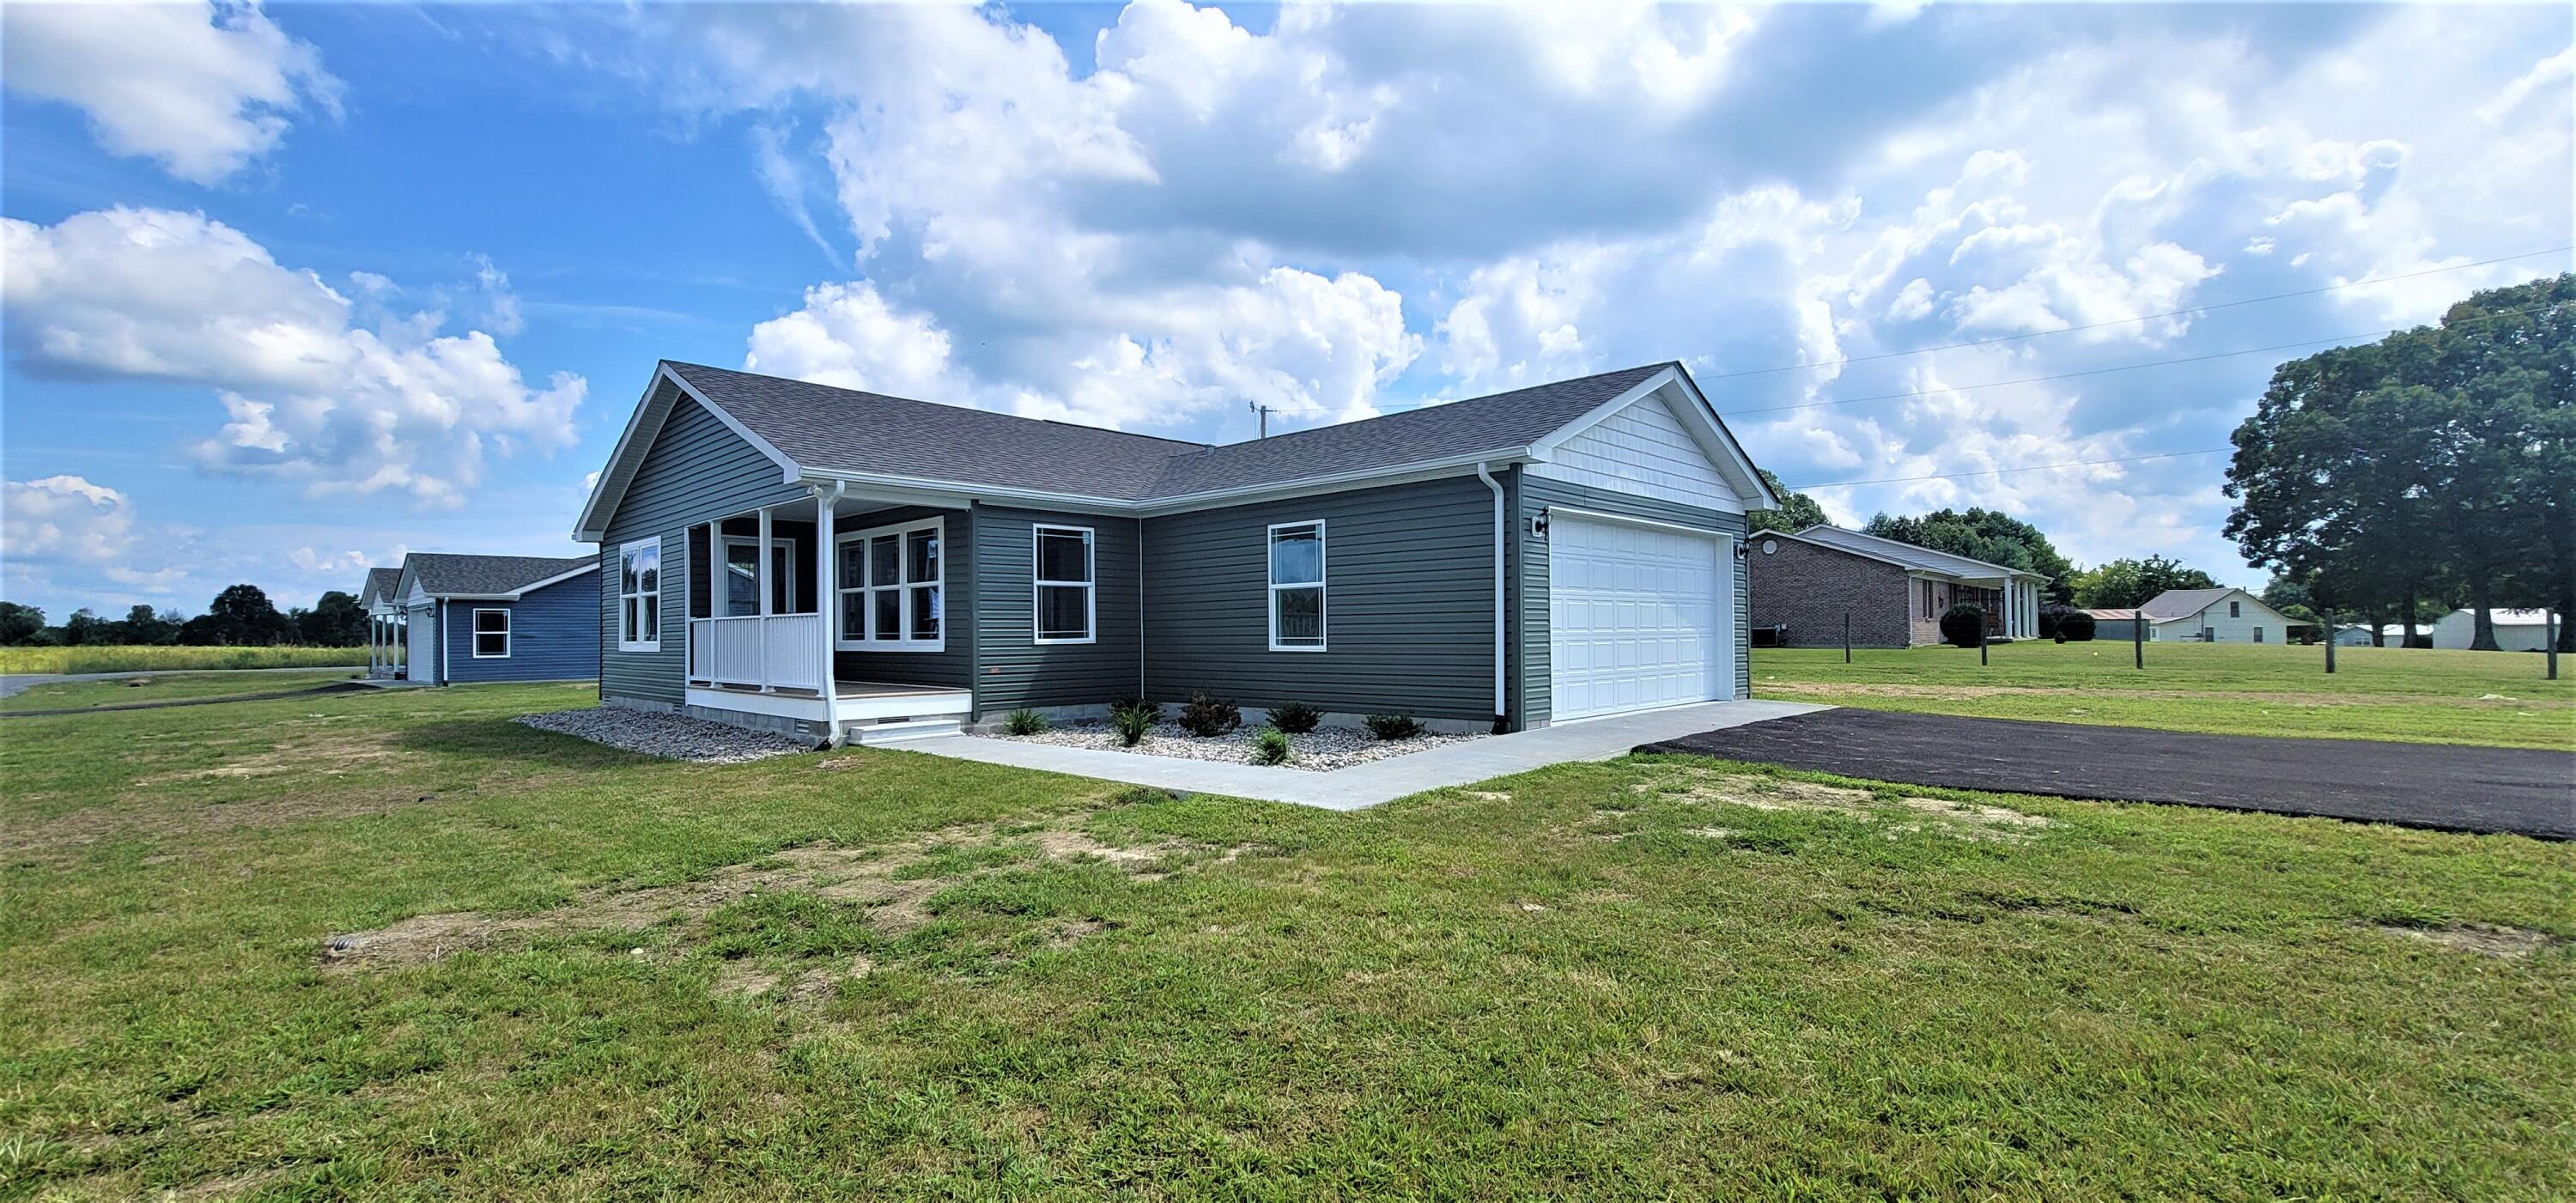 20 Village Drive, Russell Springs, KY 42642